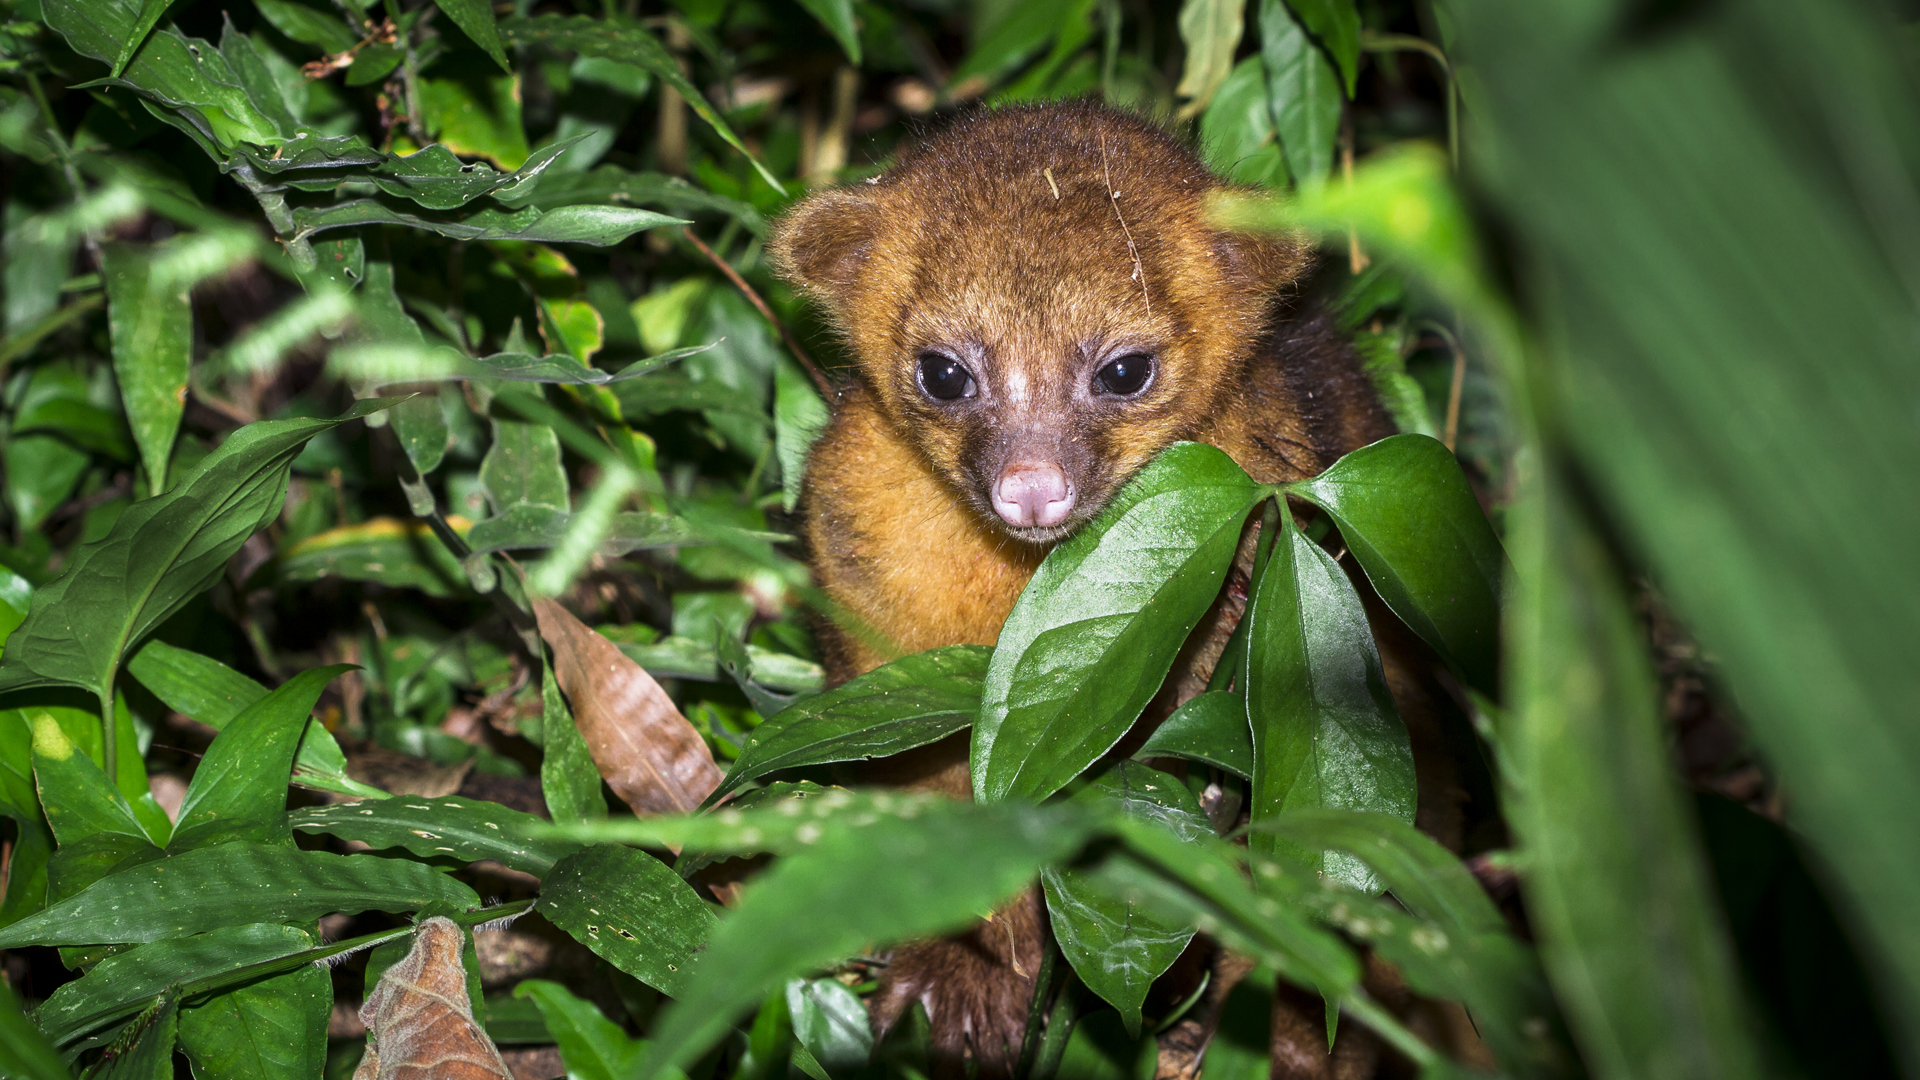 In this file photo, a young kinkajou is seen in the jungle in Belize. (Credit: iStock / Getty Images Plus)